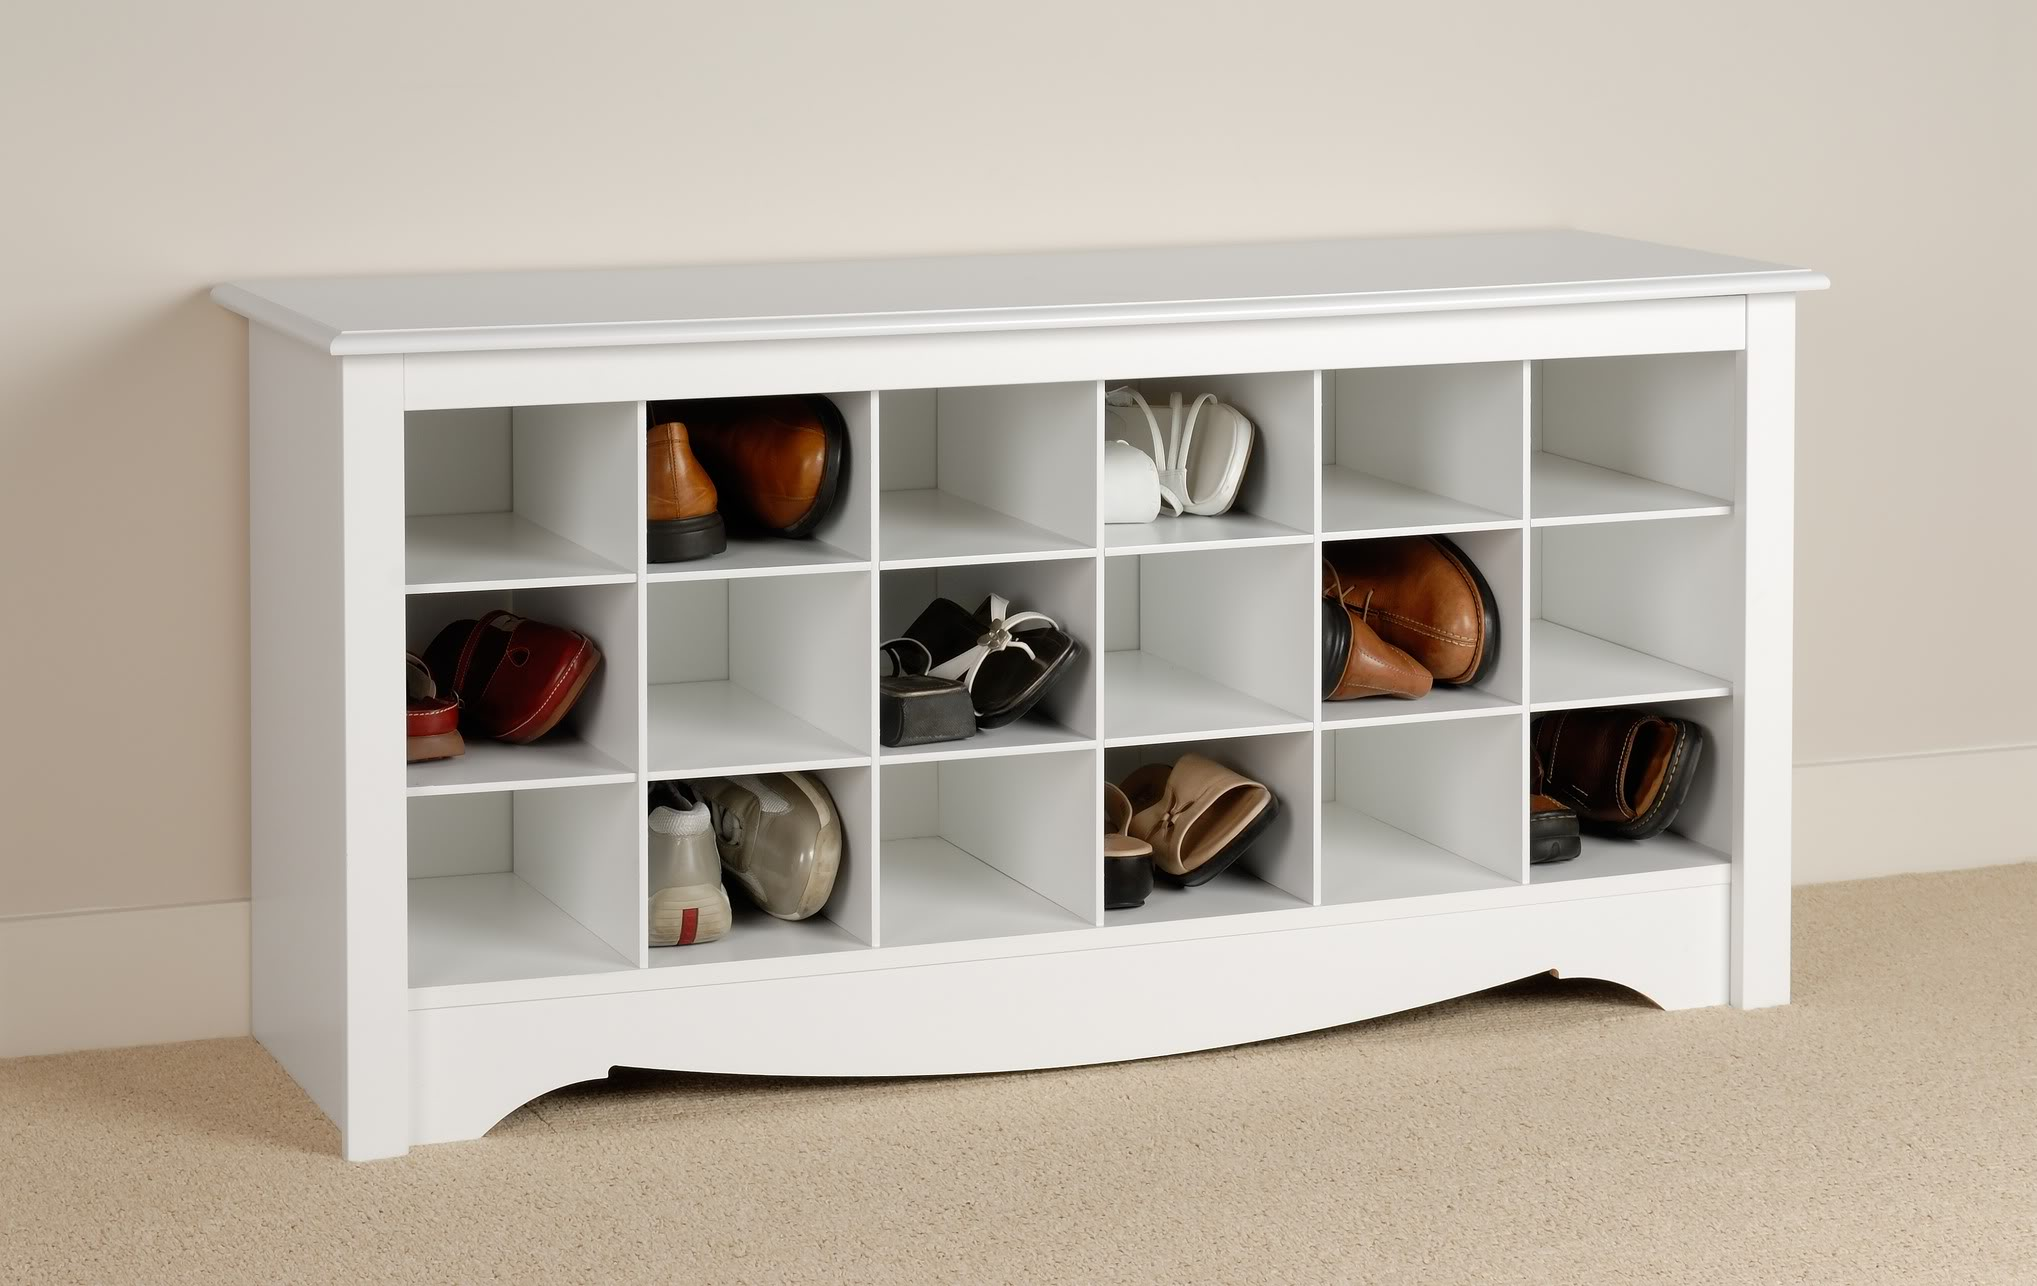 Prepac Shoe Storage Cubbies Bench (Photo 9 of 10)